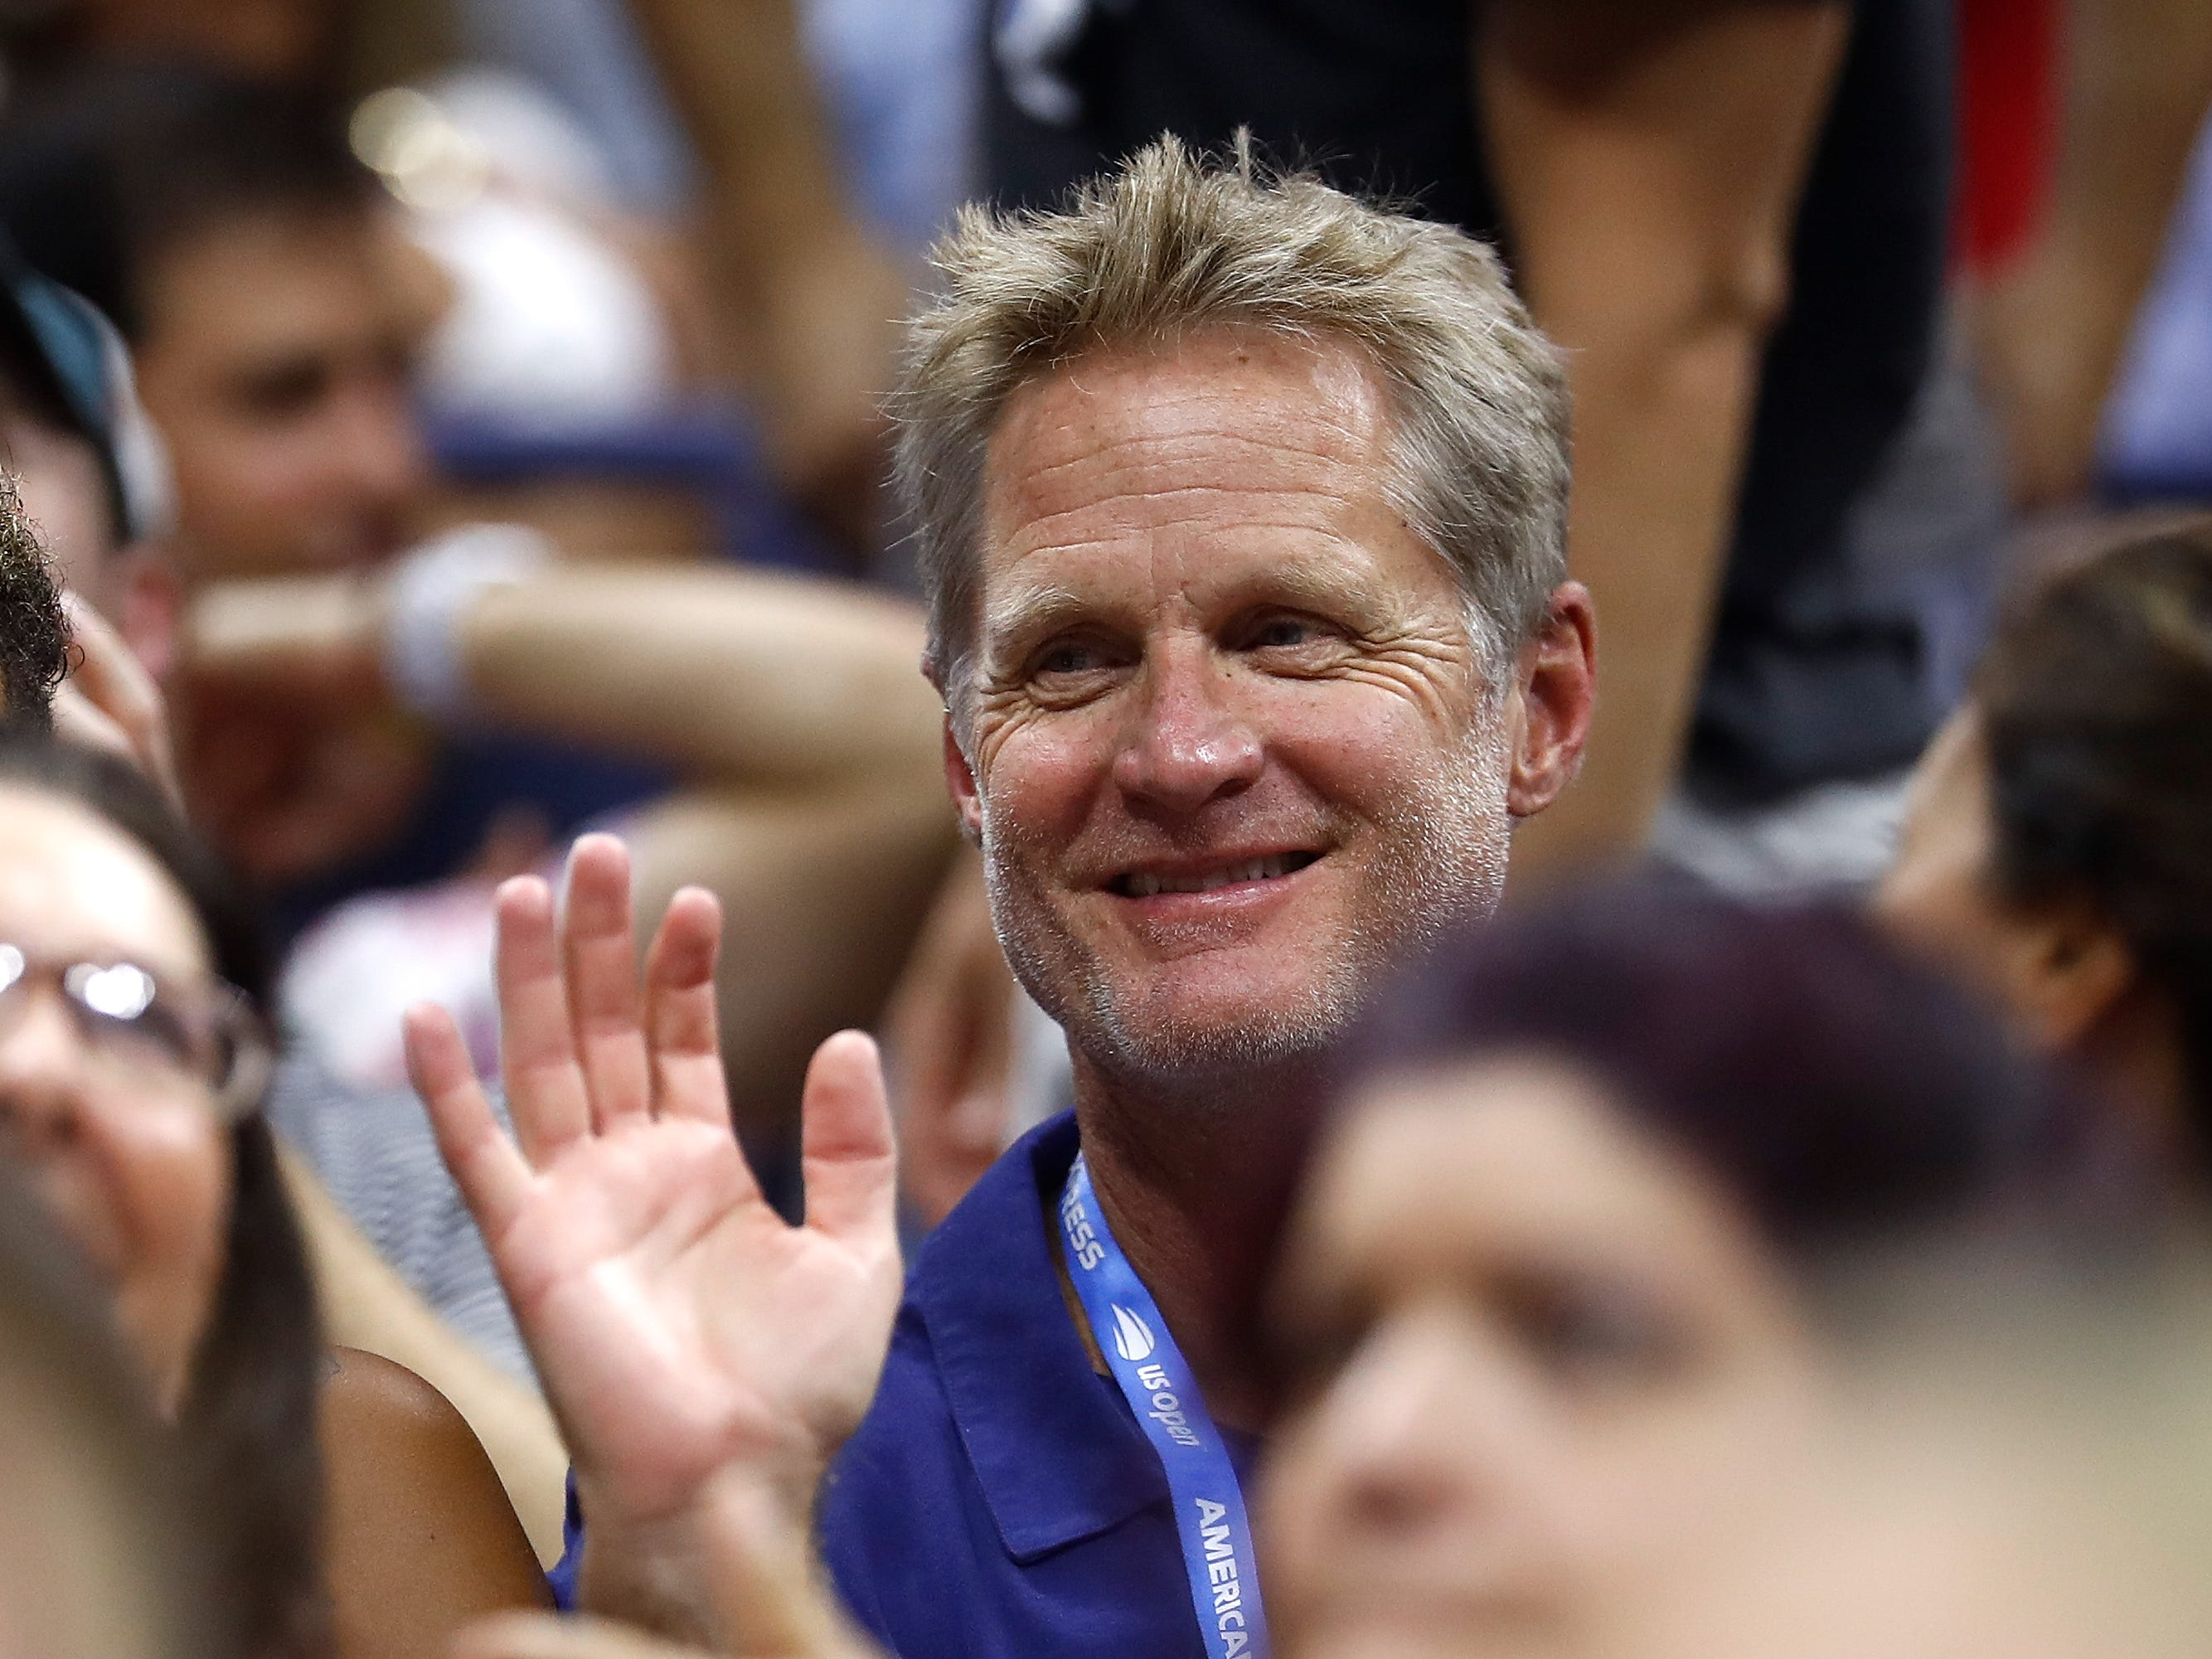 Warriors coach Steve Kerr watches the fourth-round match between John Millman and Roger Federer.